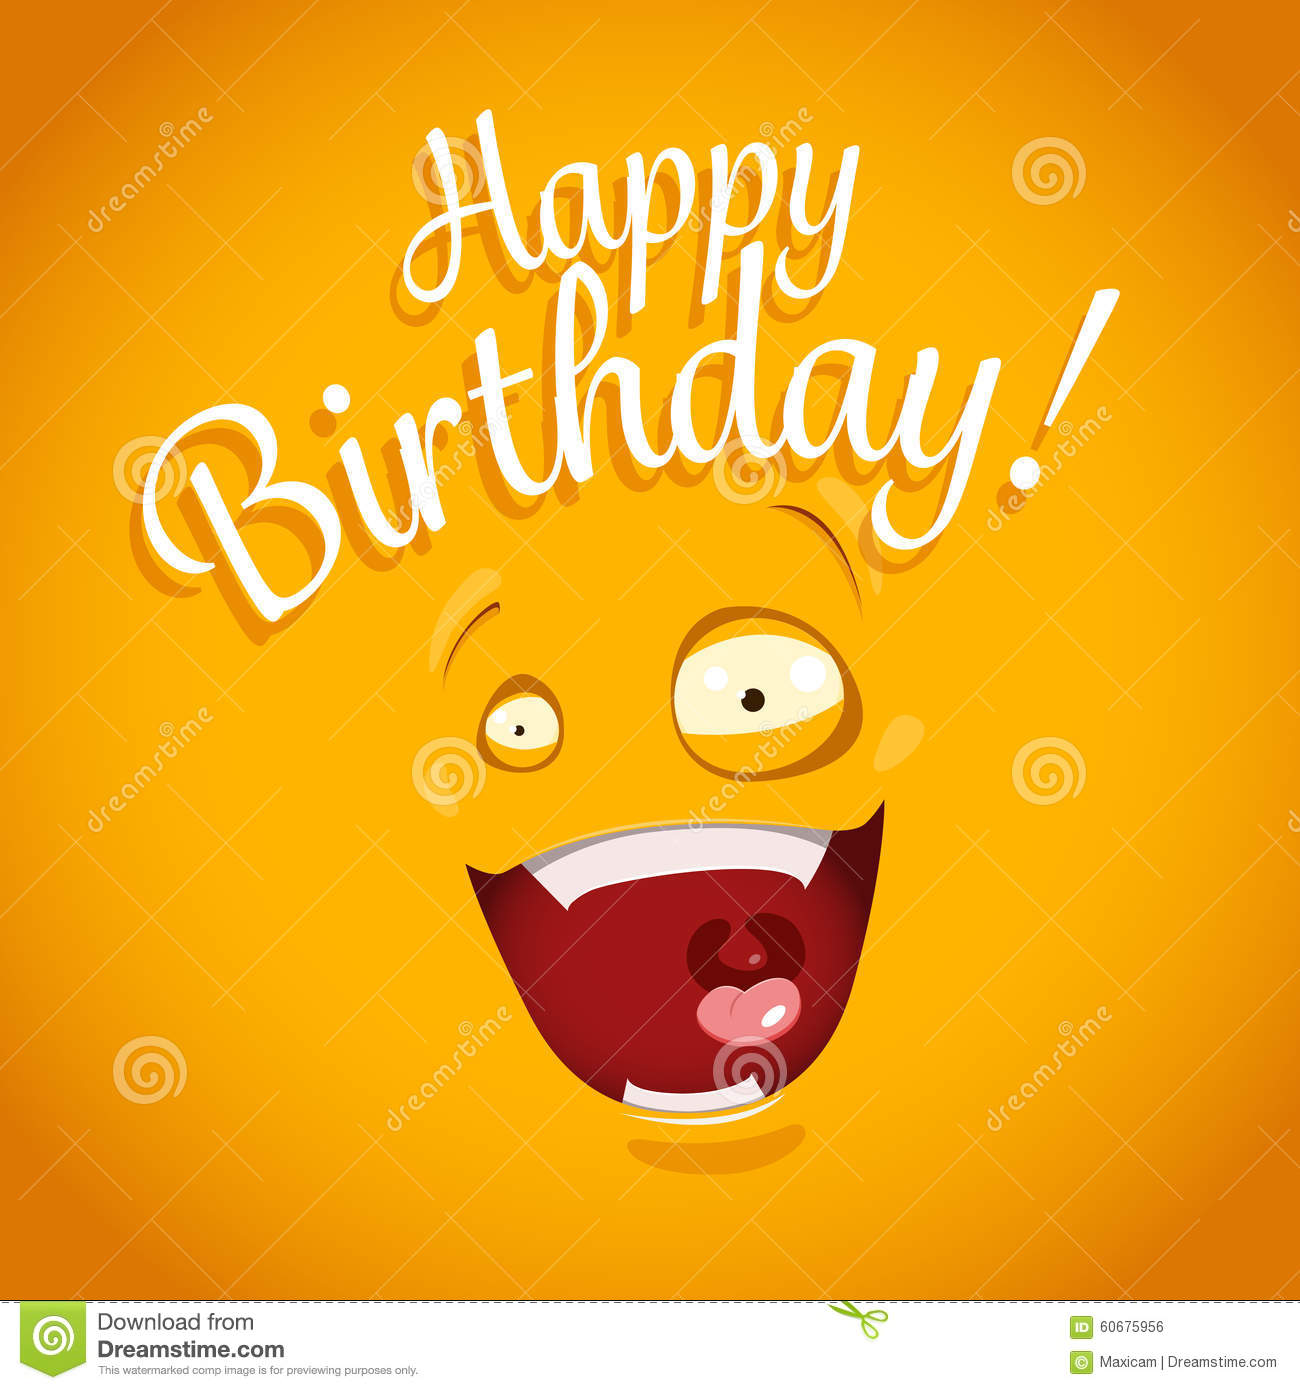 Happy Birthday Card With Funny Cartoon Emotion Face Stock